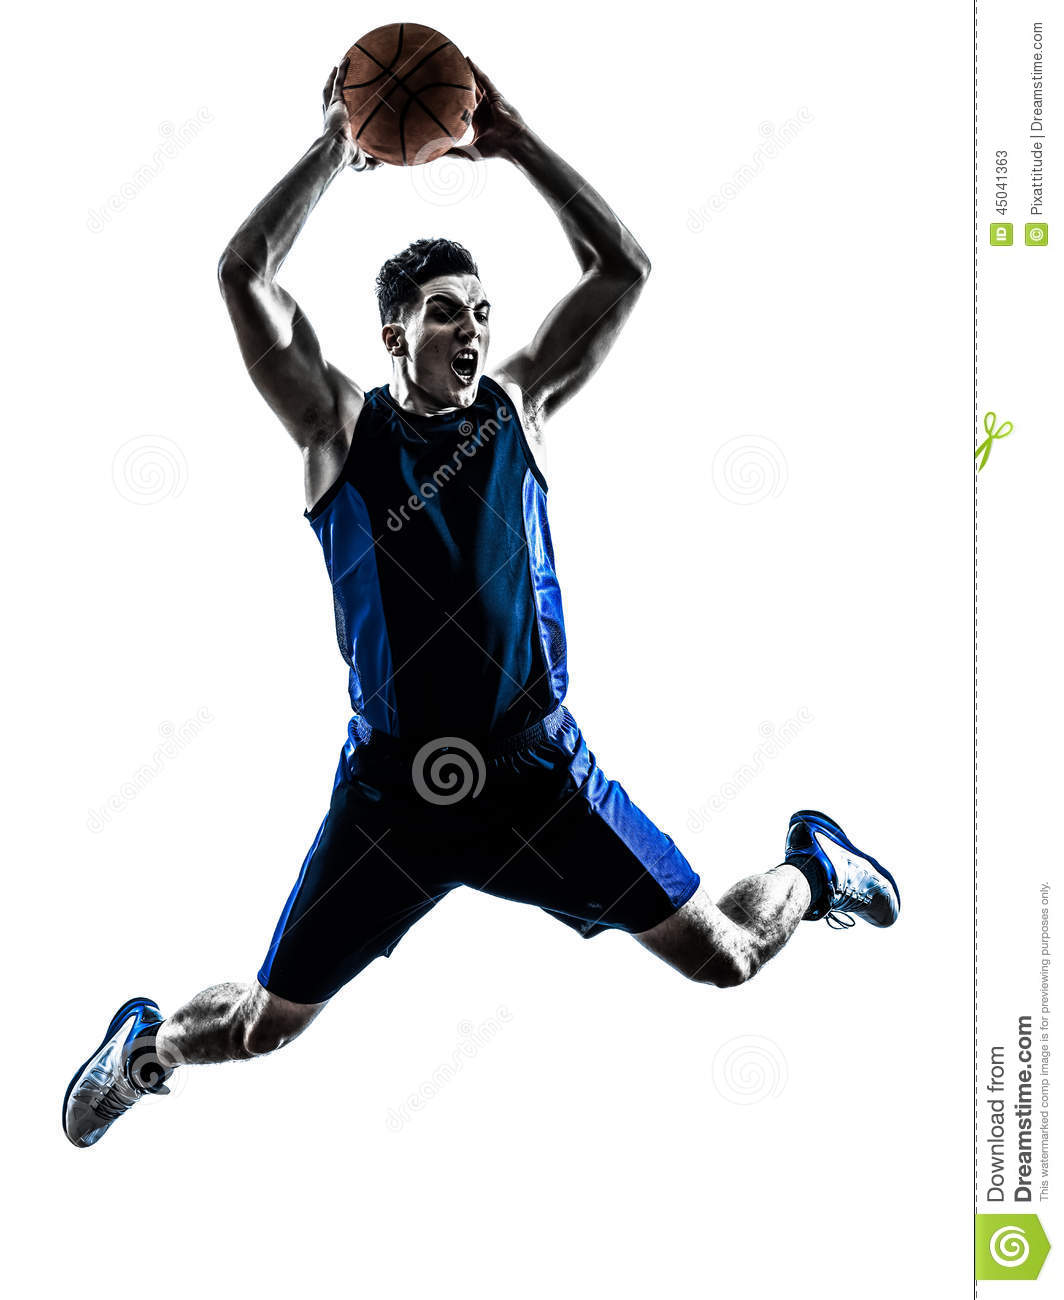 One Man Basketball Player Jumping Dunking In Silhouette Isolated White